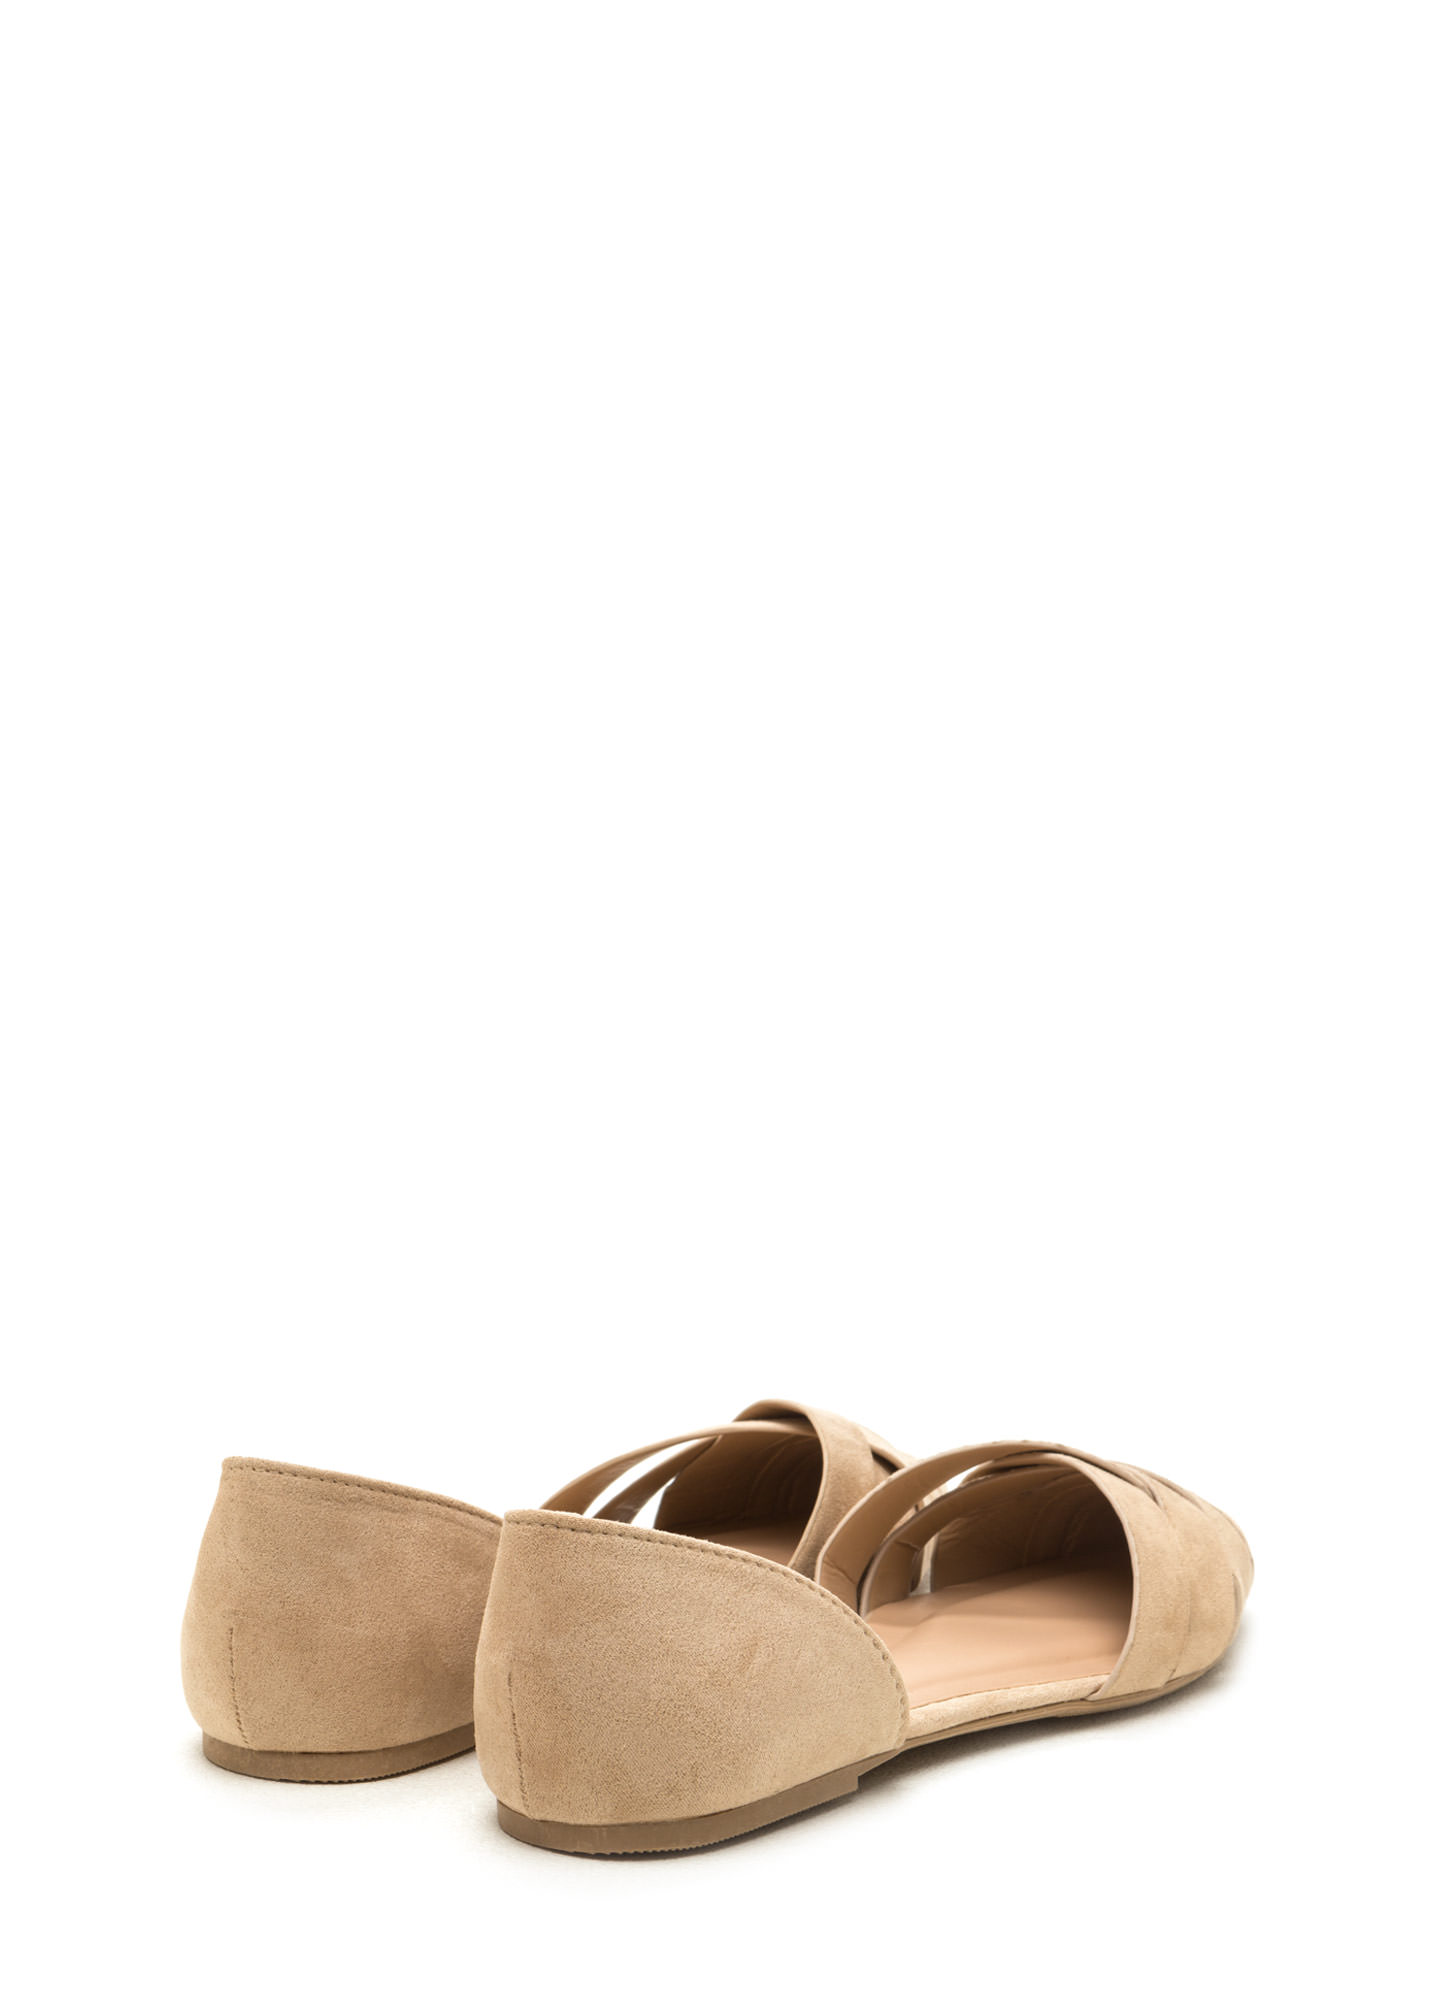 Better Be-Weave It D'Orsay Flats NATURAL